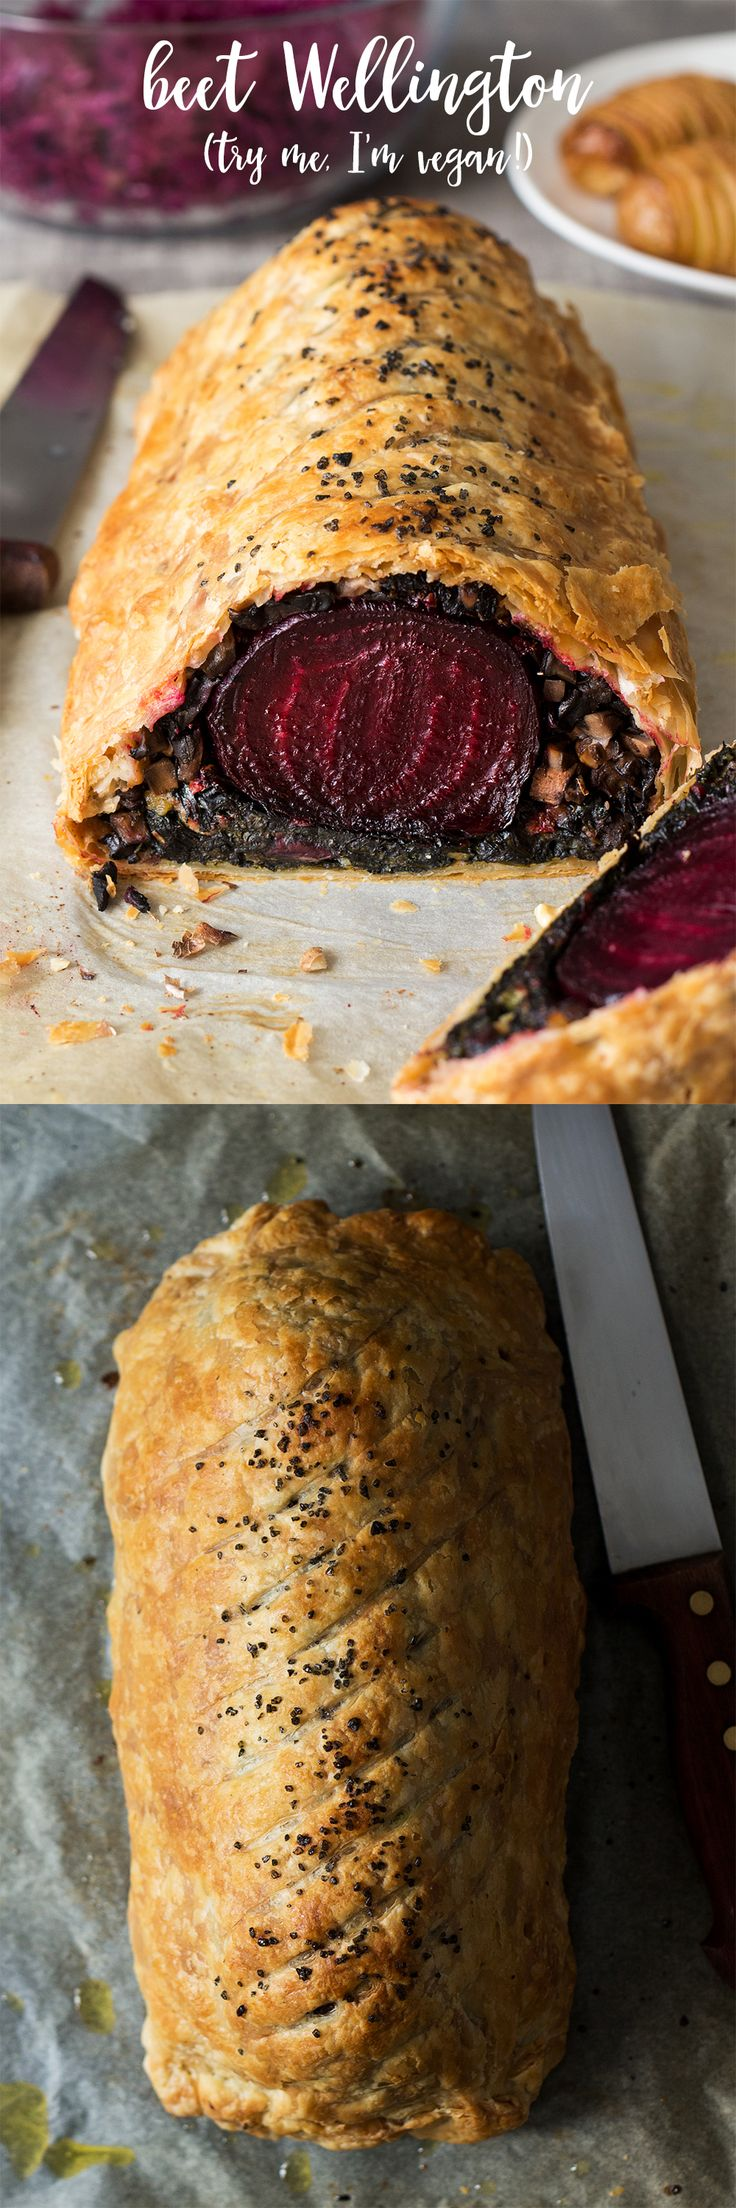 2313 best gorgeous vegan food dinner images on pinterest vegan beet wellington with balsamic reduction vegetarian recipes forumfinder Images